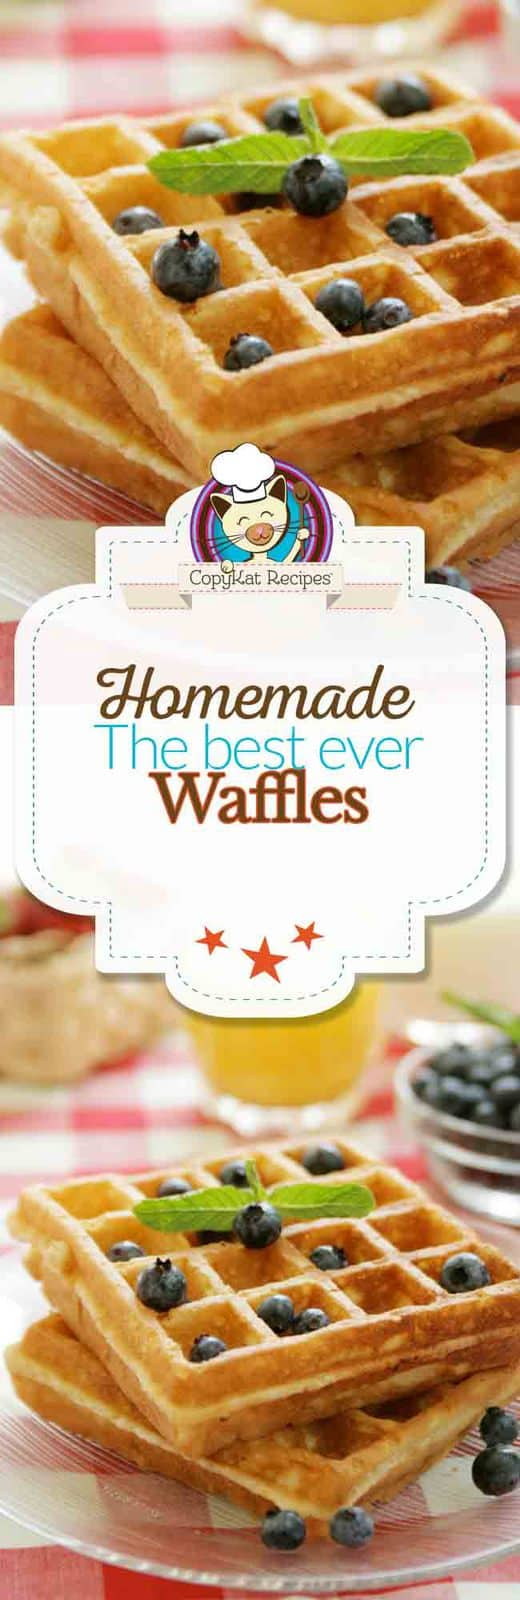 How to make a delicious homemade waffle from scratch.  You will love this recipe.